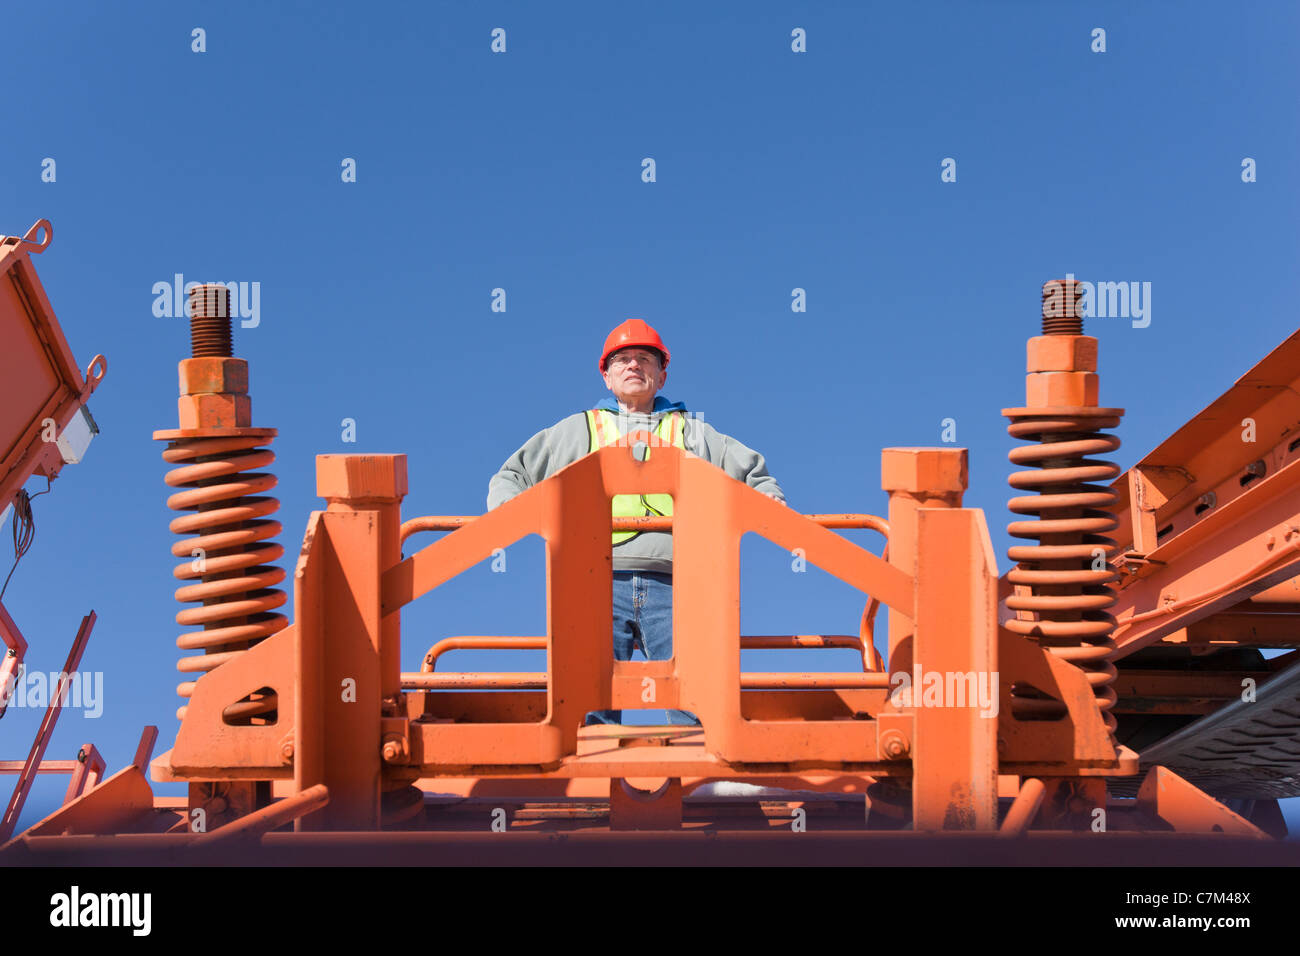 Engineer on a platform of rock crusher at a construction site - Stock Image